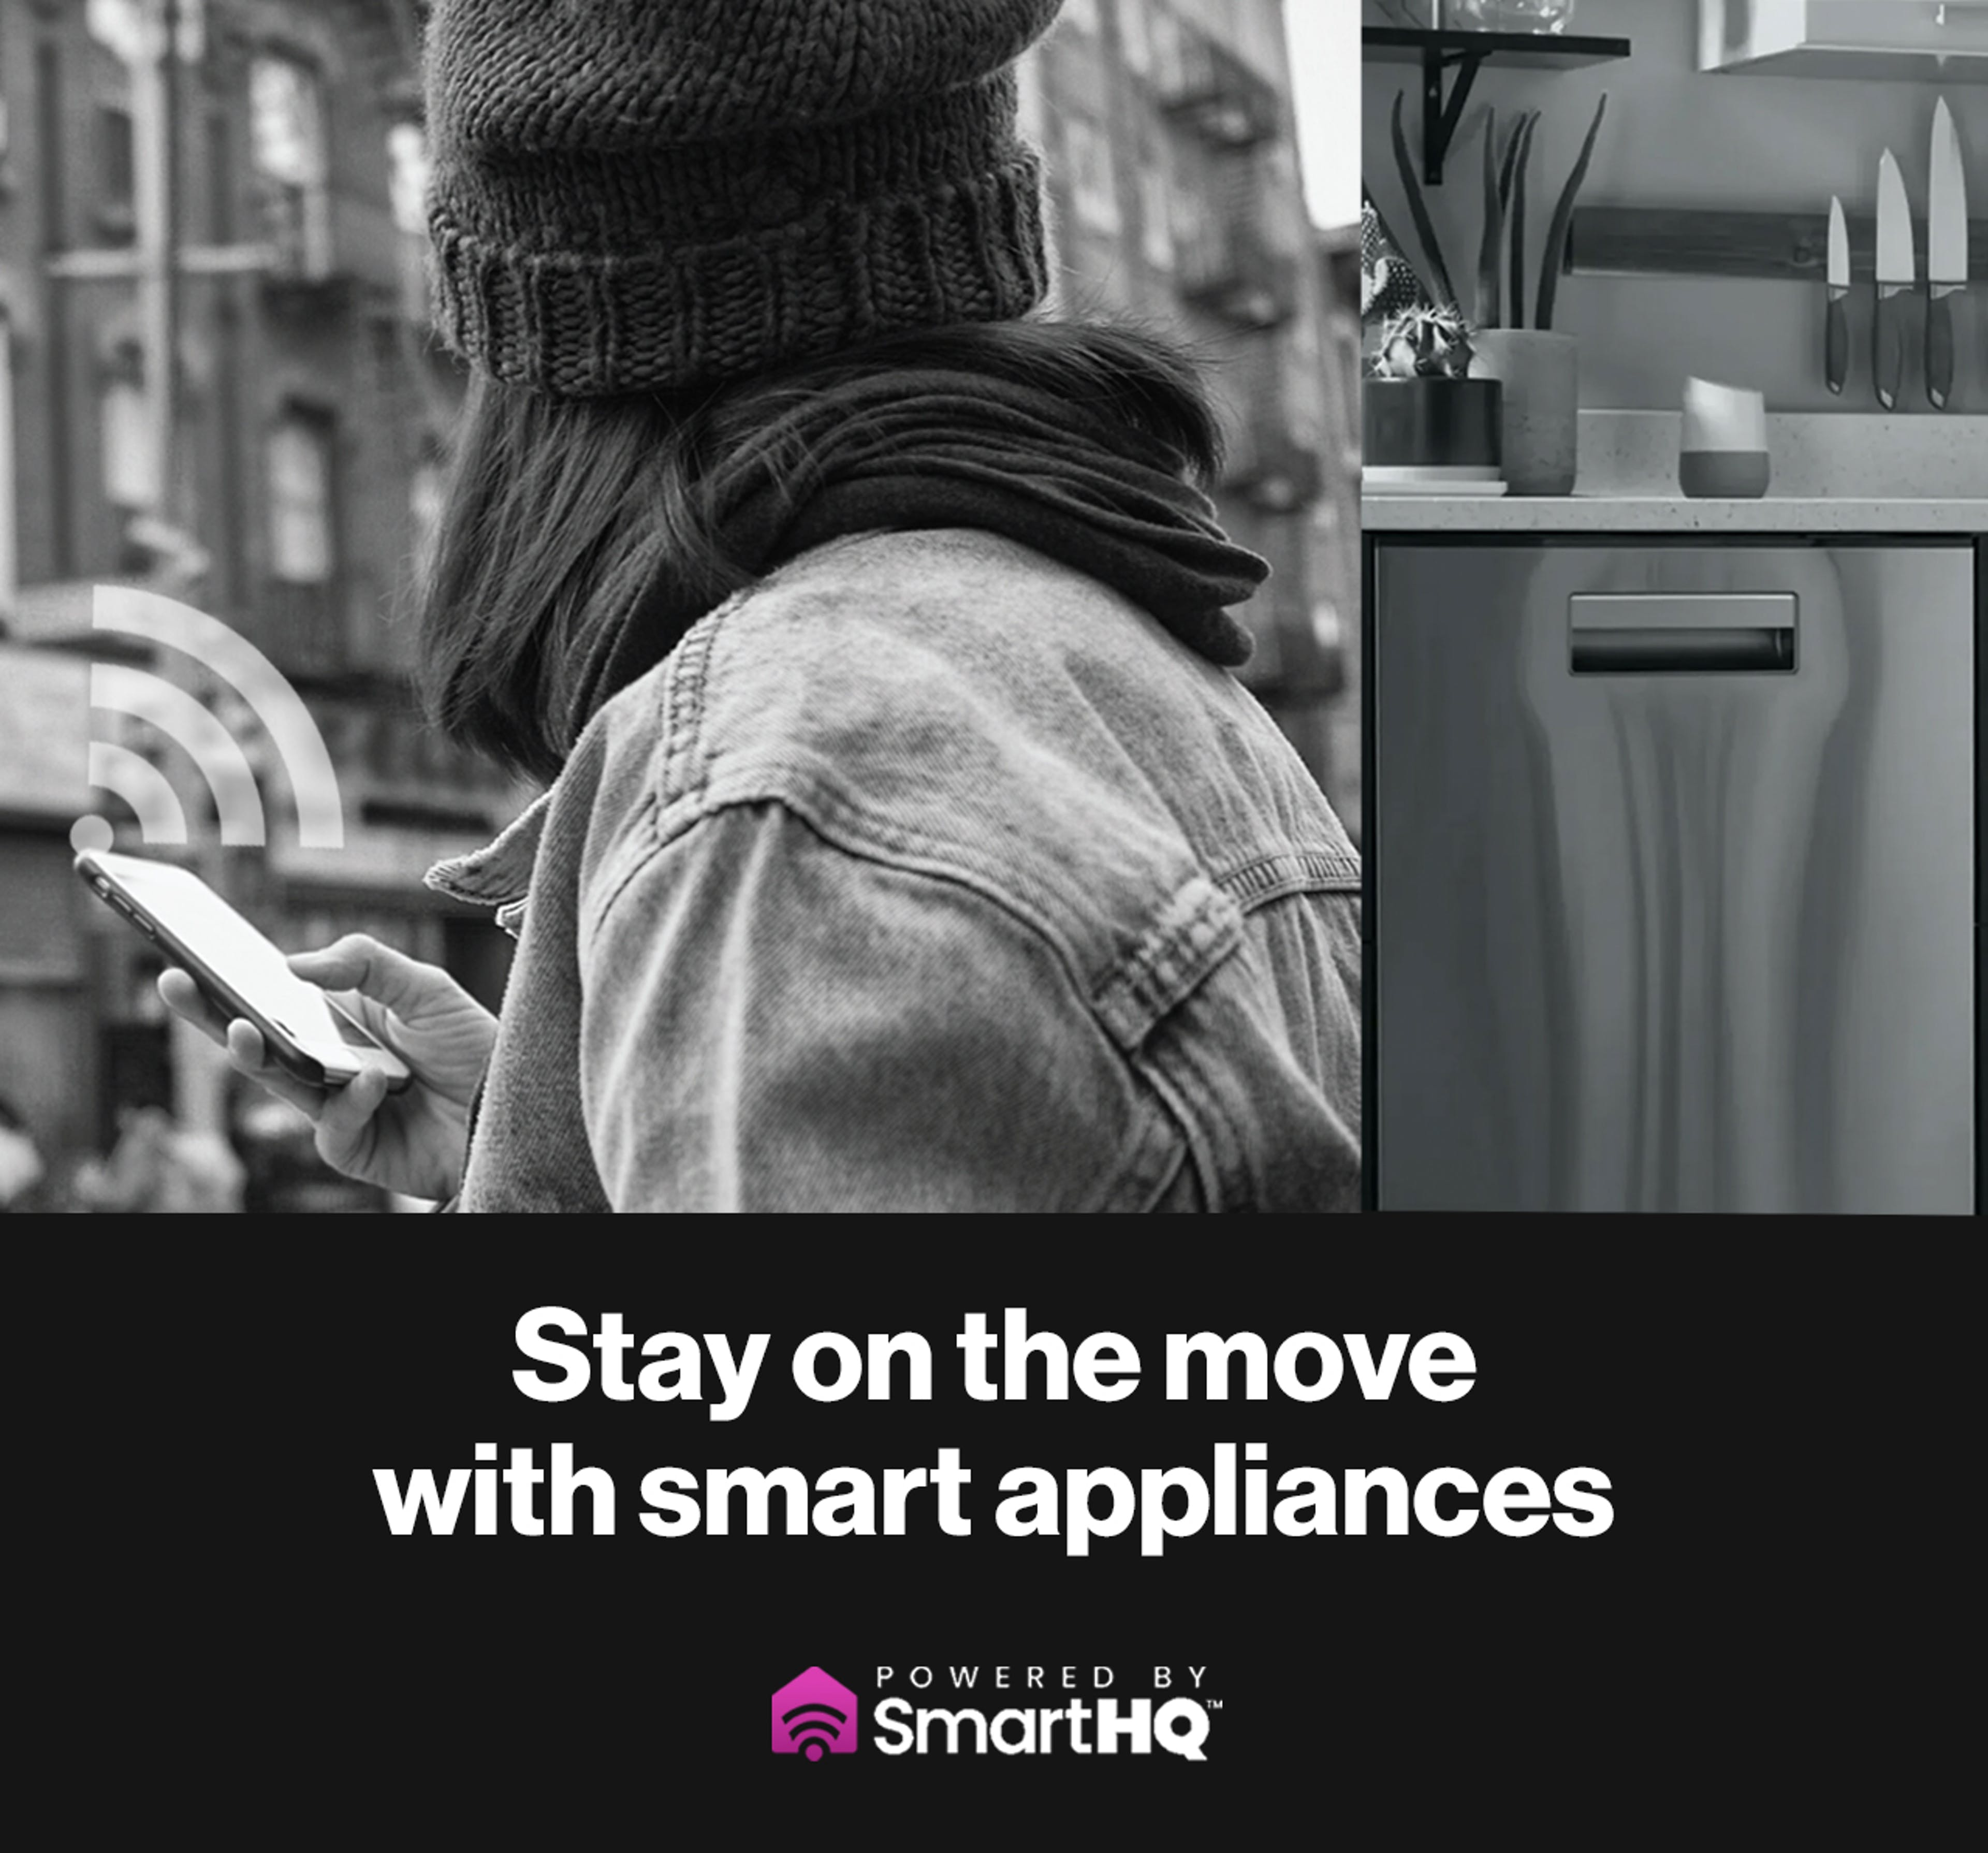 Millennial using the SmartHQ app on her phone to interact with her smart appliance